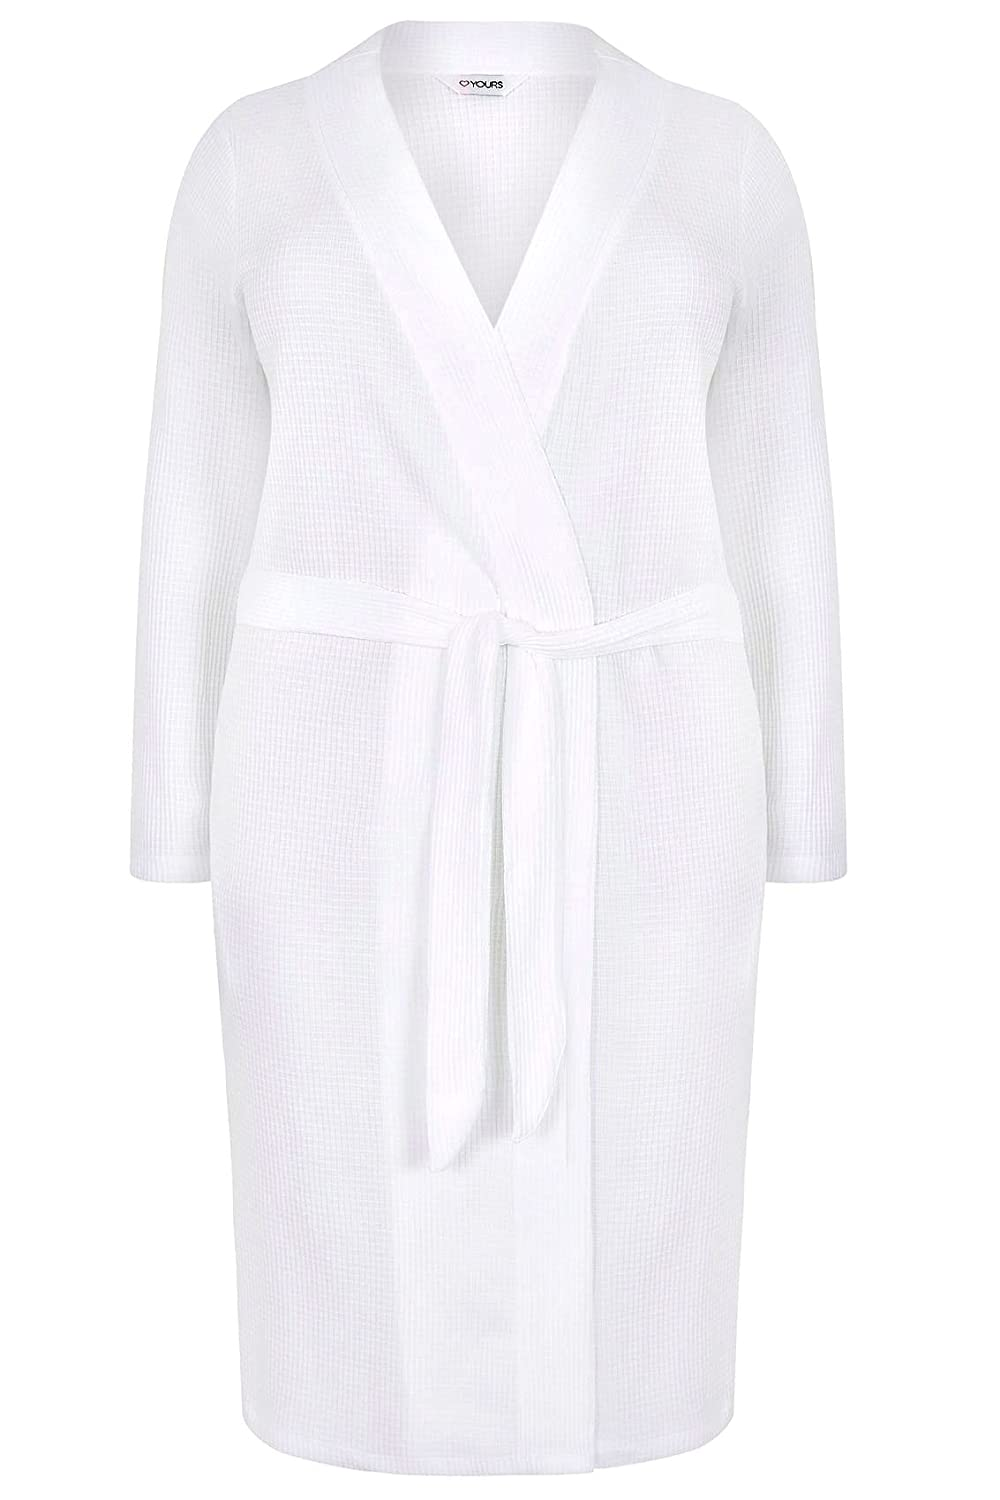 Yours Clothing Women's Plus Size Textured Cotton Dressing Gown with Pockets